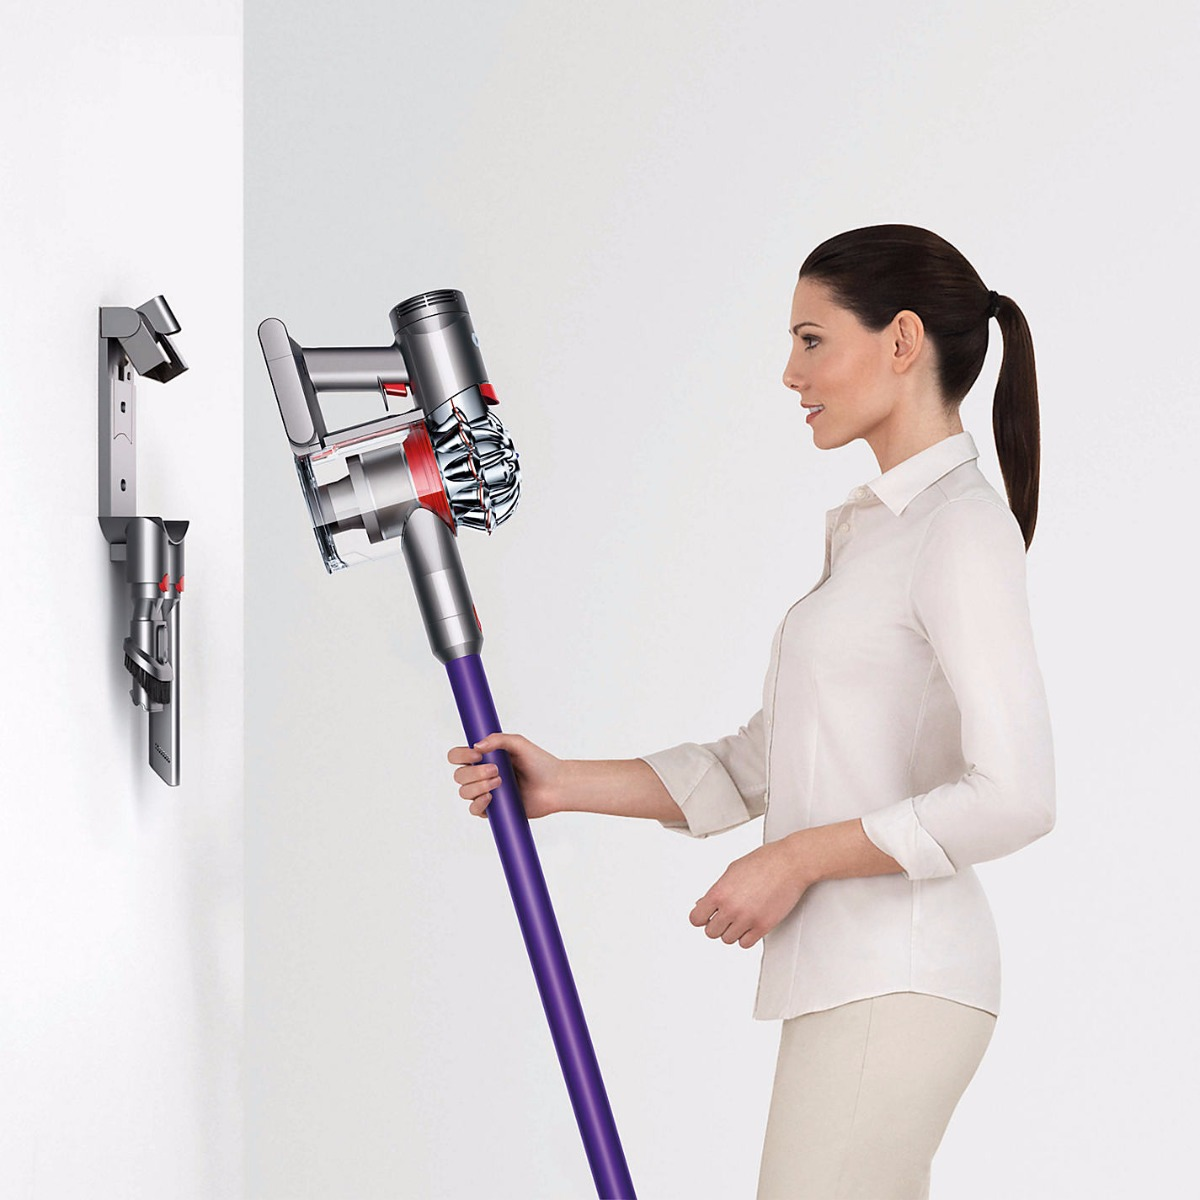 dyson v7 animal Cord-Free Vacuum Cleaner. Stores and charges the machine, and holds additional attachments. Charging and storing the vacuum on the docking station means it's always ready to go.